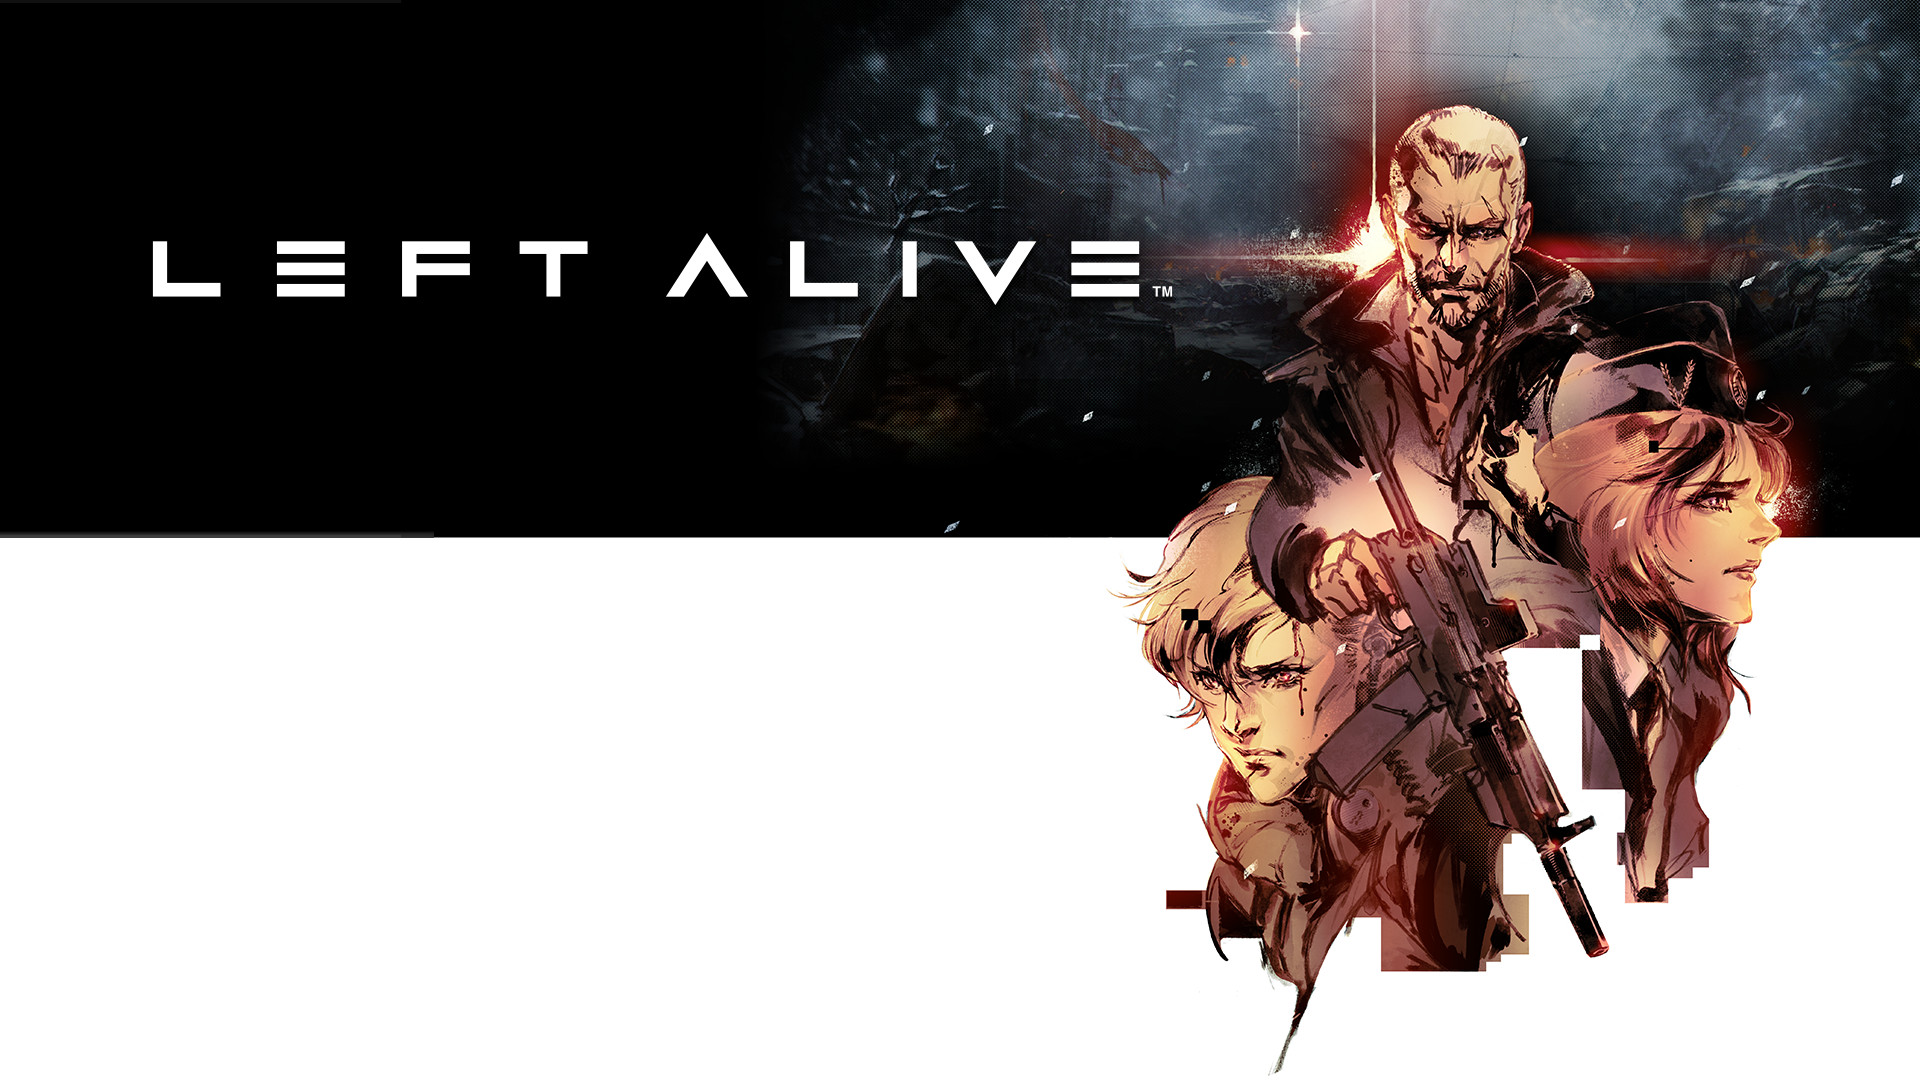 LEFT ALIVE - Gamescom 2018 Interview and First Look